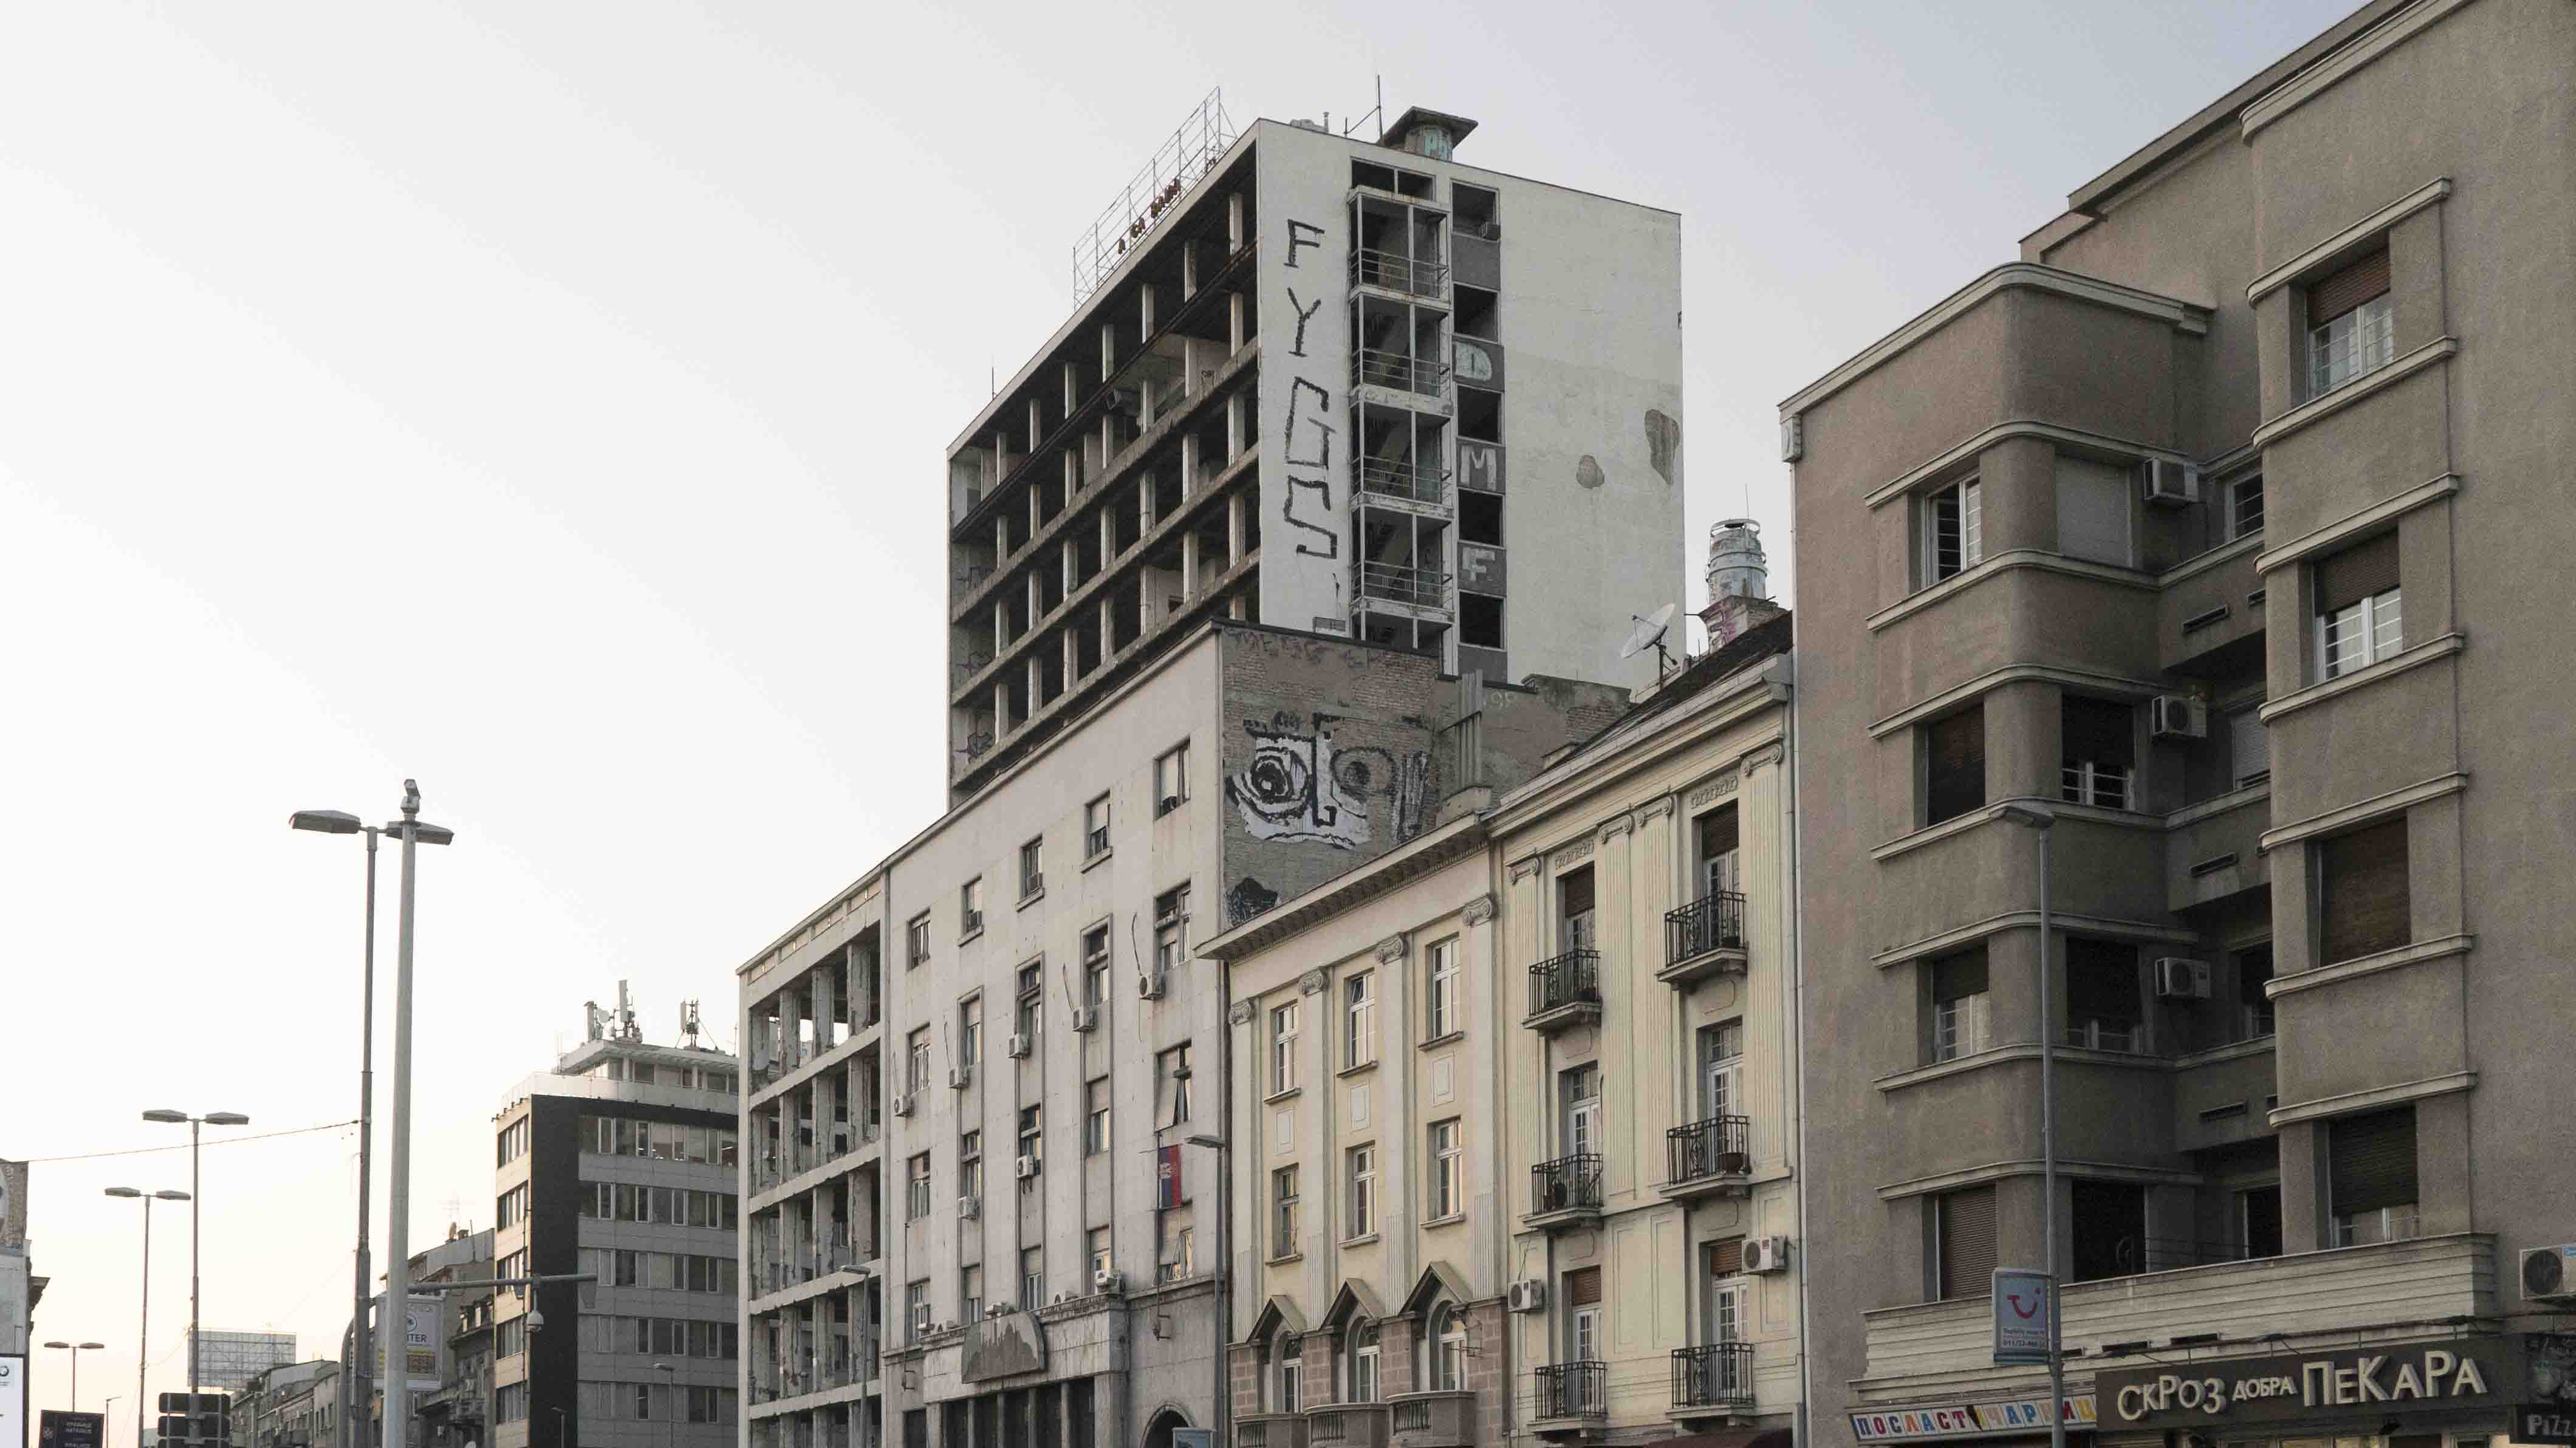 Highrise Building Damaged By NATO Air Ride 1999 In The Center Of Belgrade,  2.10.2017, Foto: Robert B. Fishman